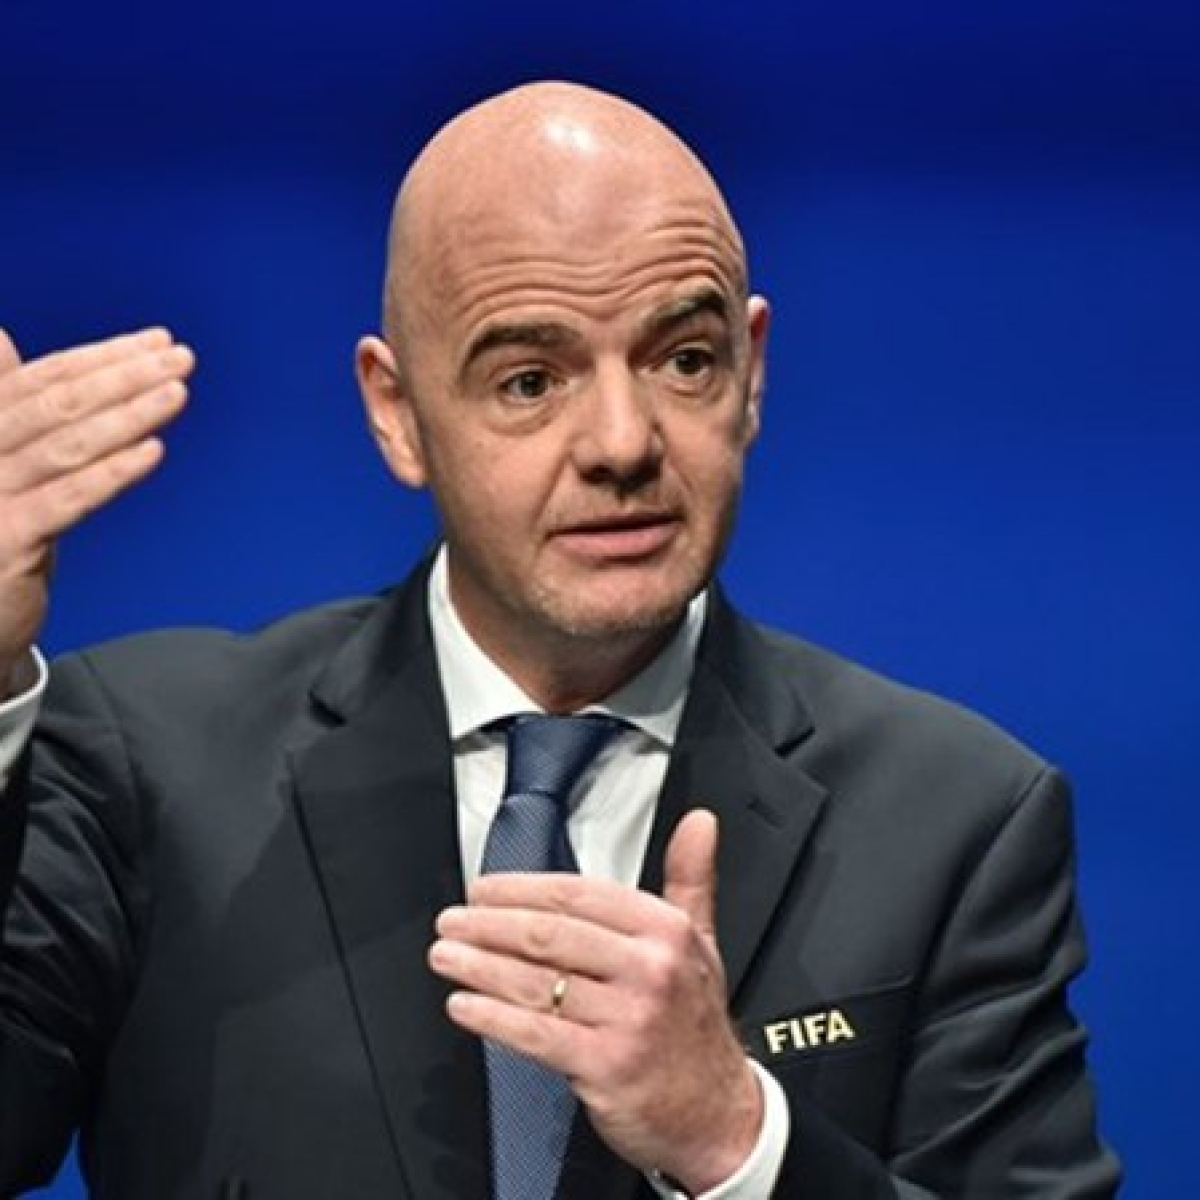 """""""Maybe we can reform football by taking a step back"""", says FIFA president Gianni Infantino"""